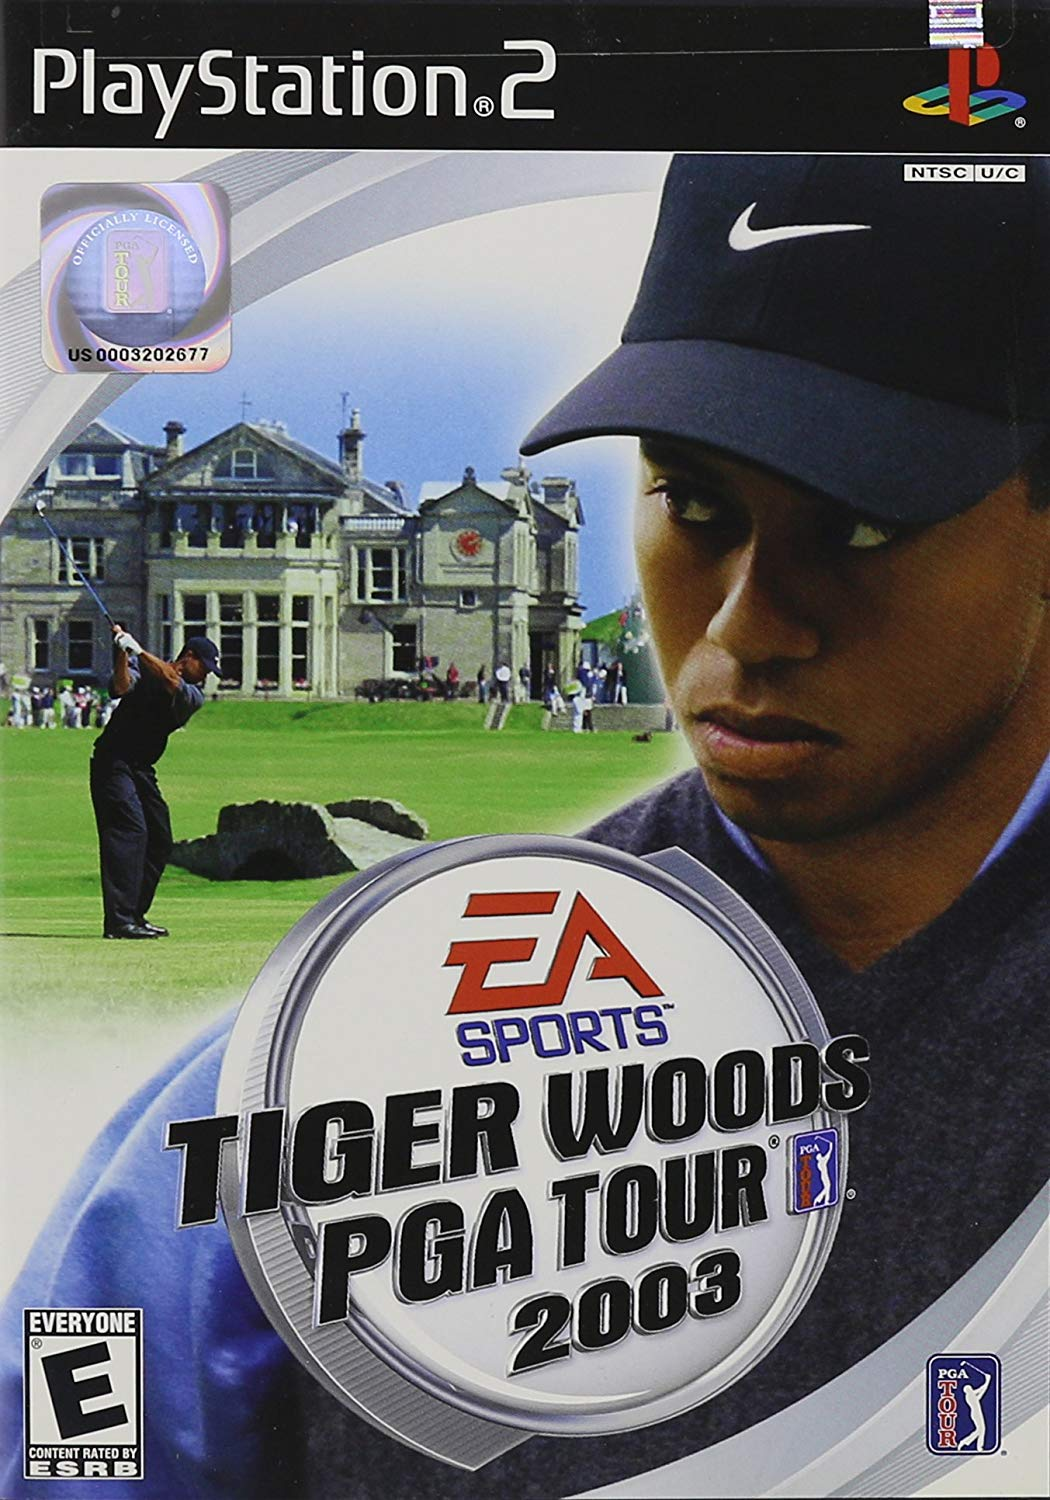 Tiger woods PGA tour 2003